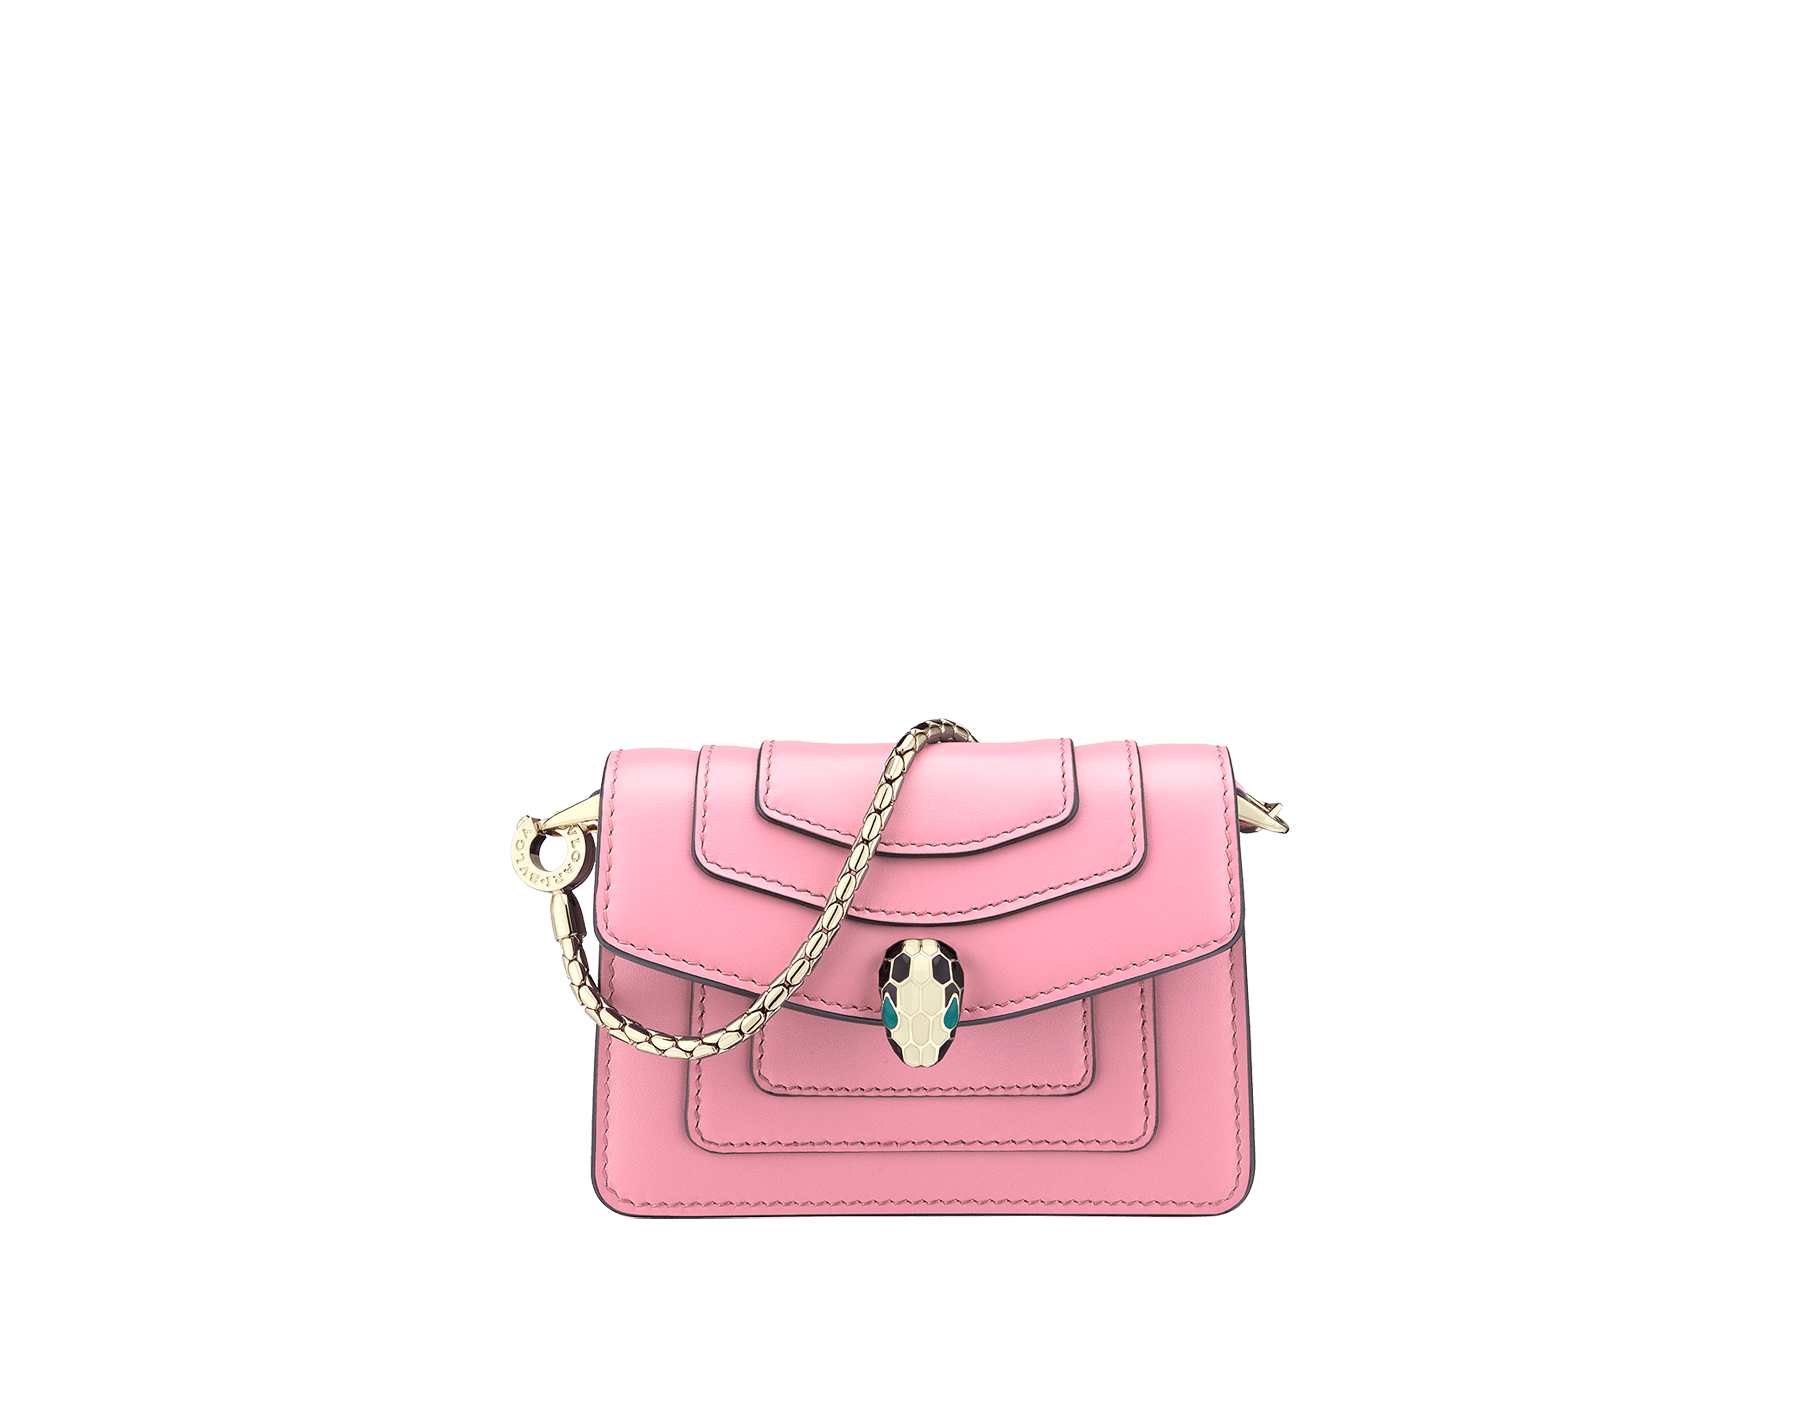 Bag charm Serpenti Forever miniature in flamingo quartz calf leather, with bordeaux calf leather lining. Iconic brass light gold plated snakehead stud closure enameled in black and white and finished with green enamel eyes. 288369 image 1